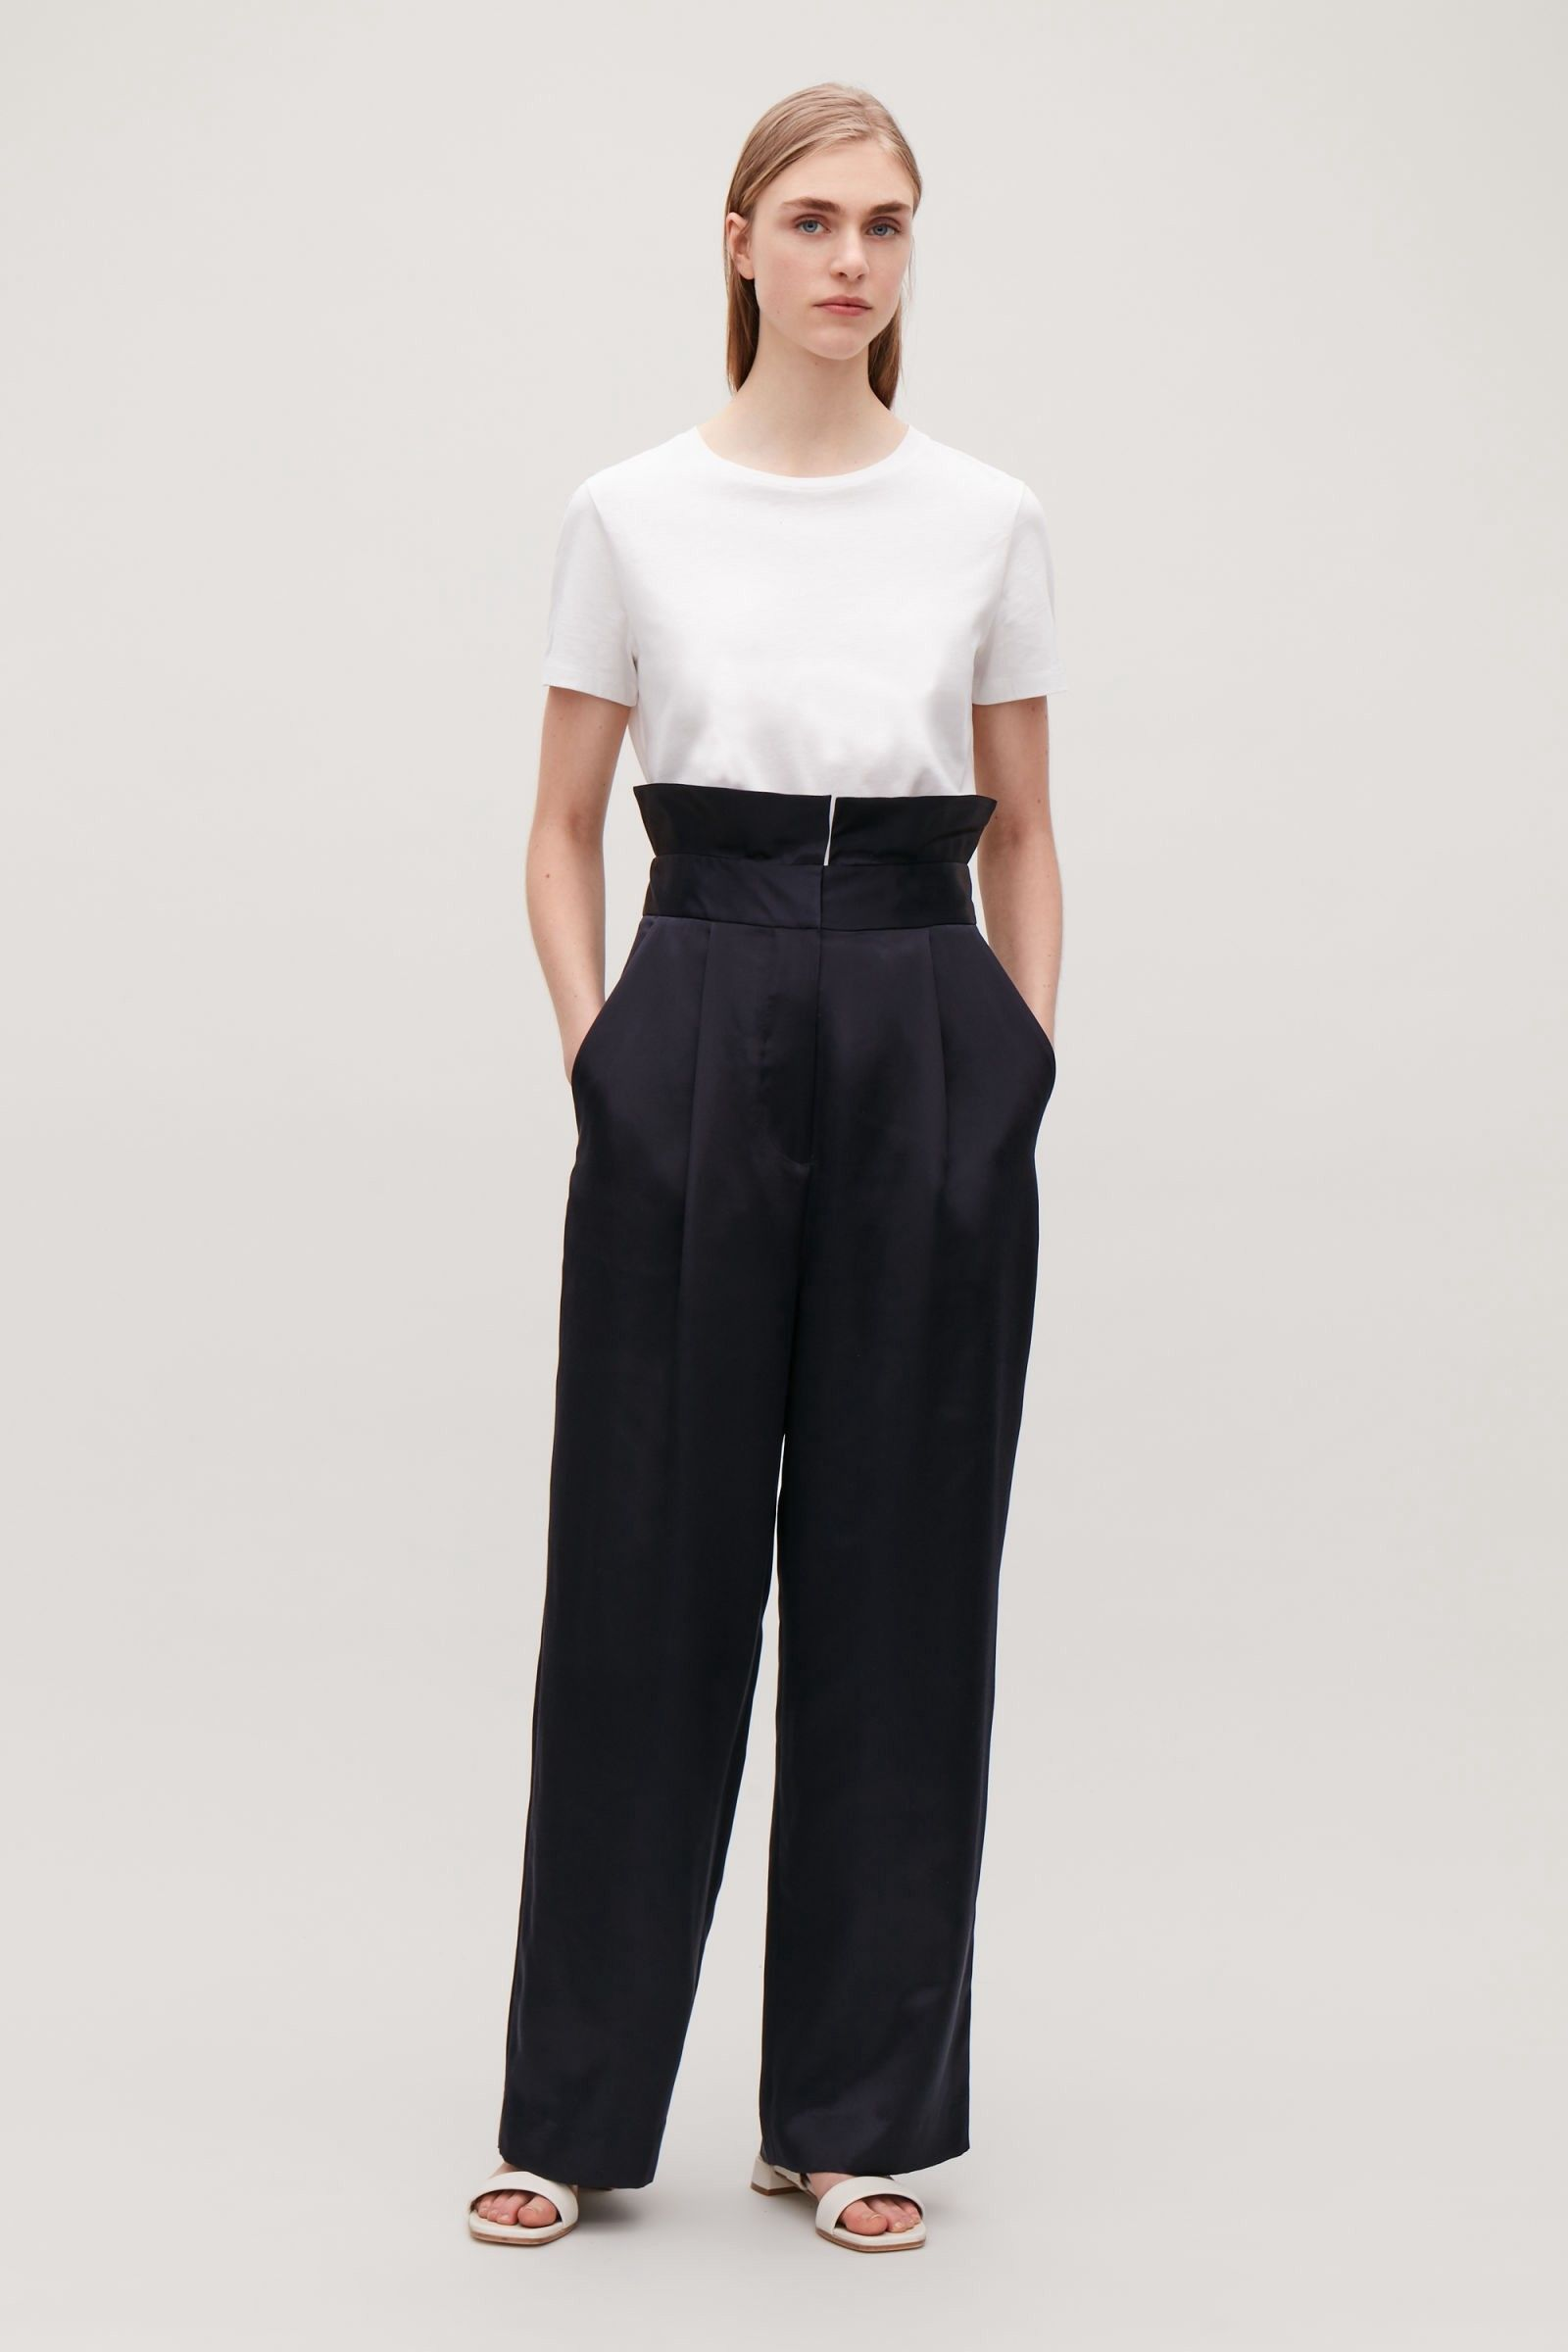 a8f89d2580 Cos Silk Trousers With Frill Waist - Navy 2 | Products | Trousers ...